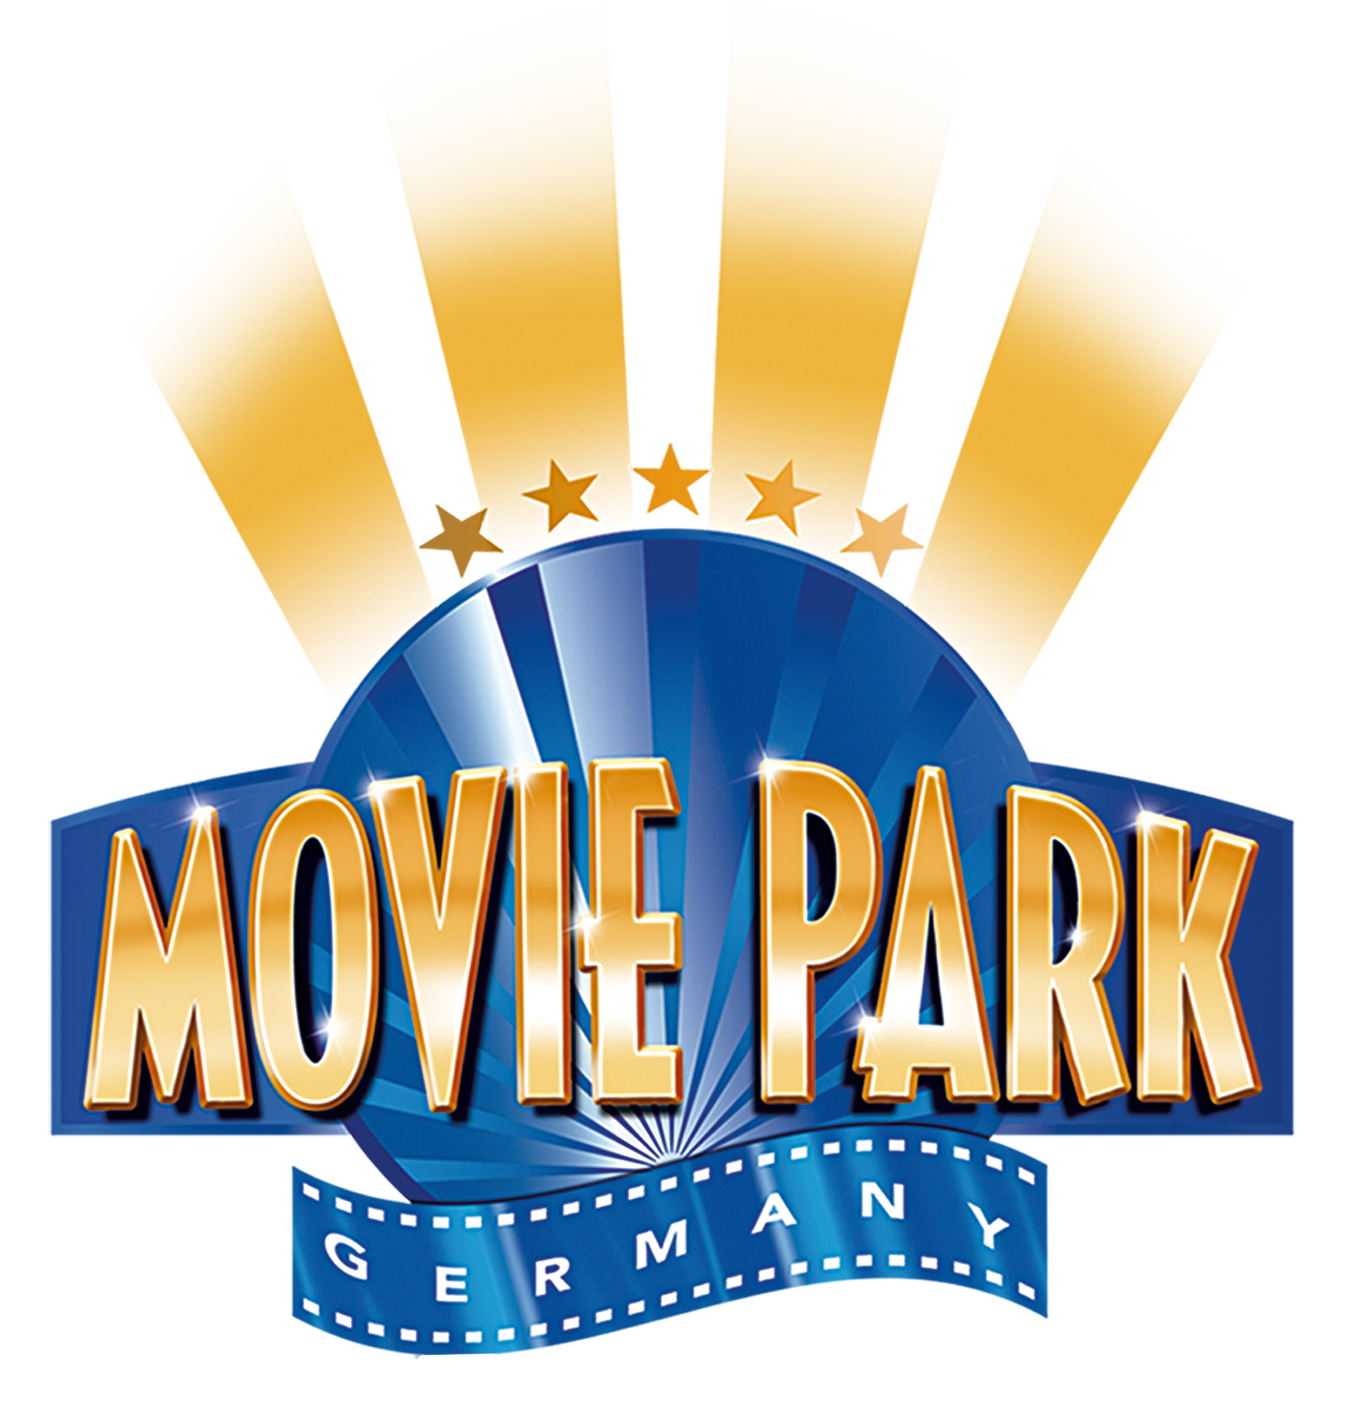 movie park movie park tickets voor movie park germany 2 p bied mee. Black Bedroom Furniture Sets. Home Design Ideas